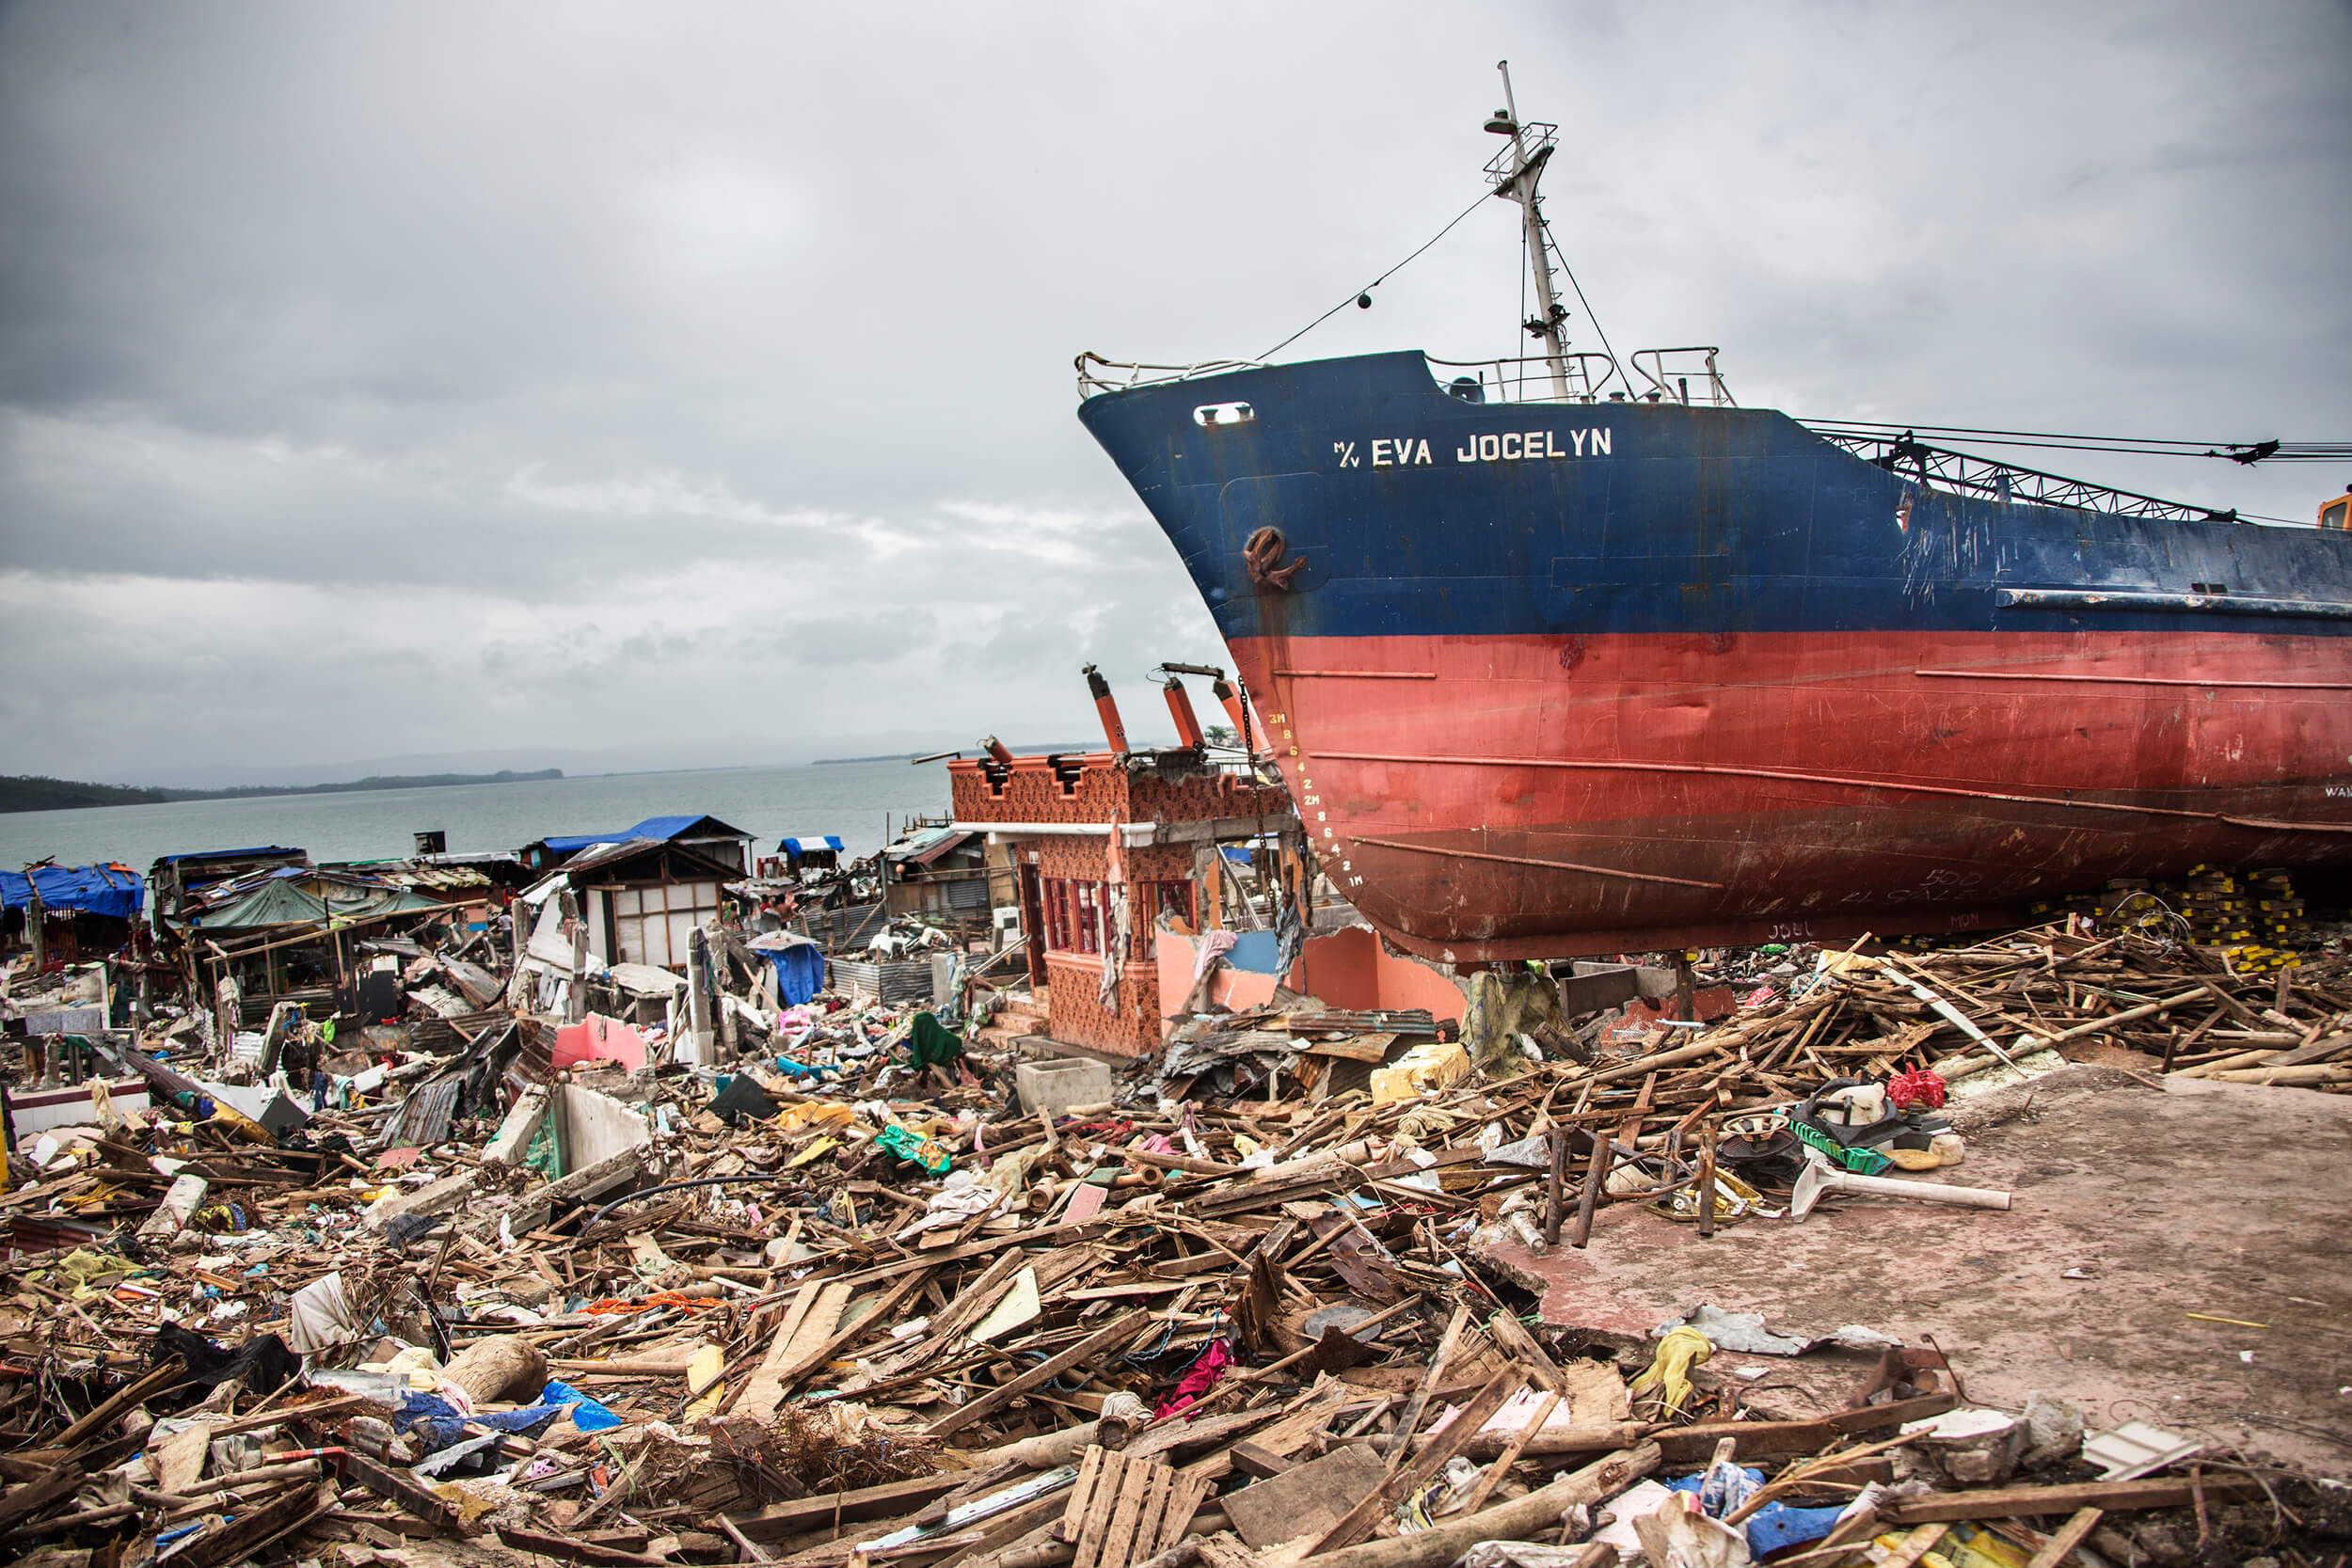 The town of Tacloban on the island of Leyte, after Typhoon Haiyan November 2013.